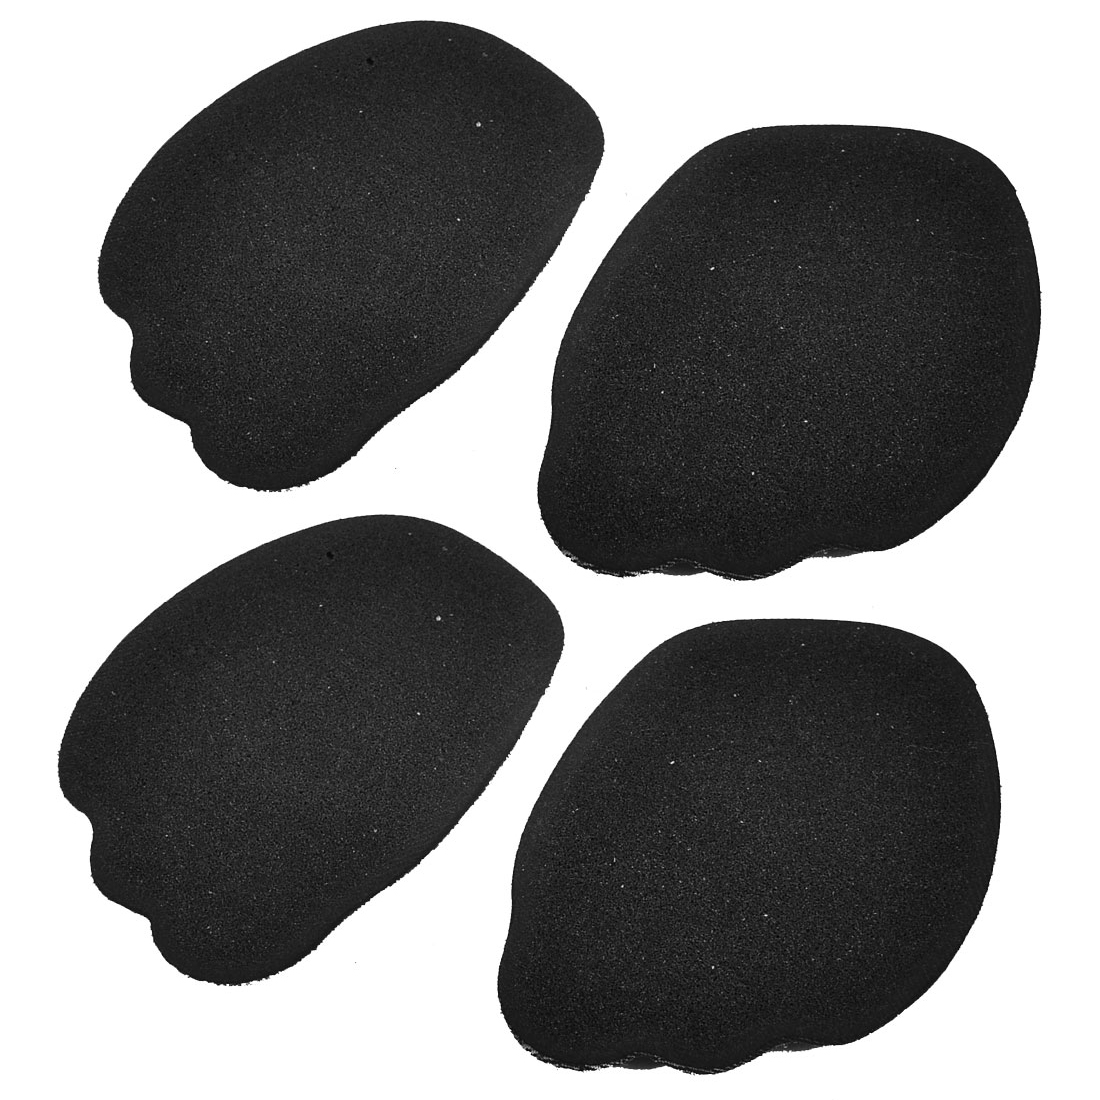 Lady Heels Forefoot Front Half Insoles Shoes Pads Cushions Black 2 Pairs